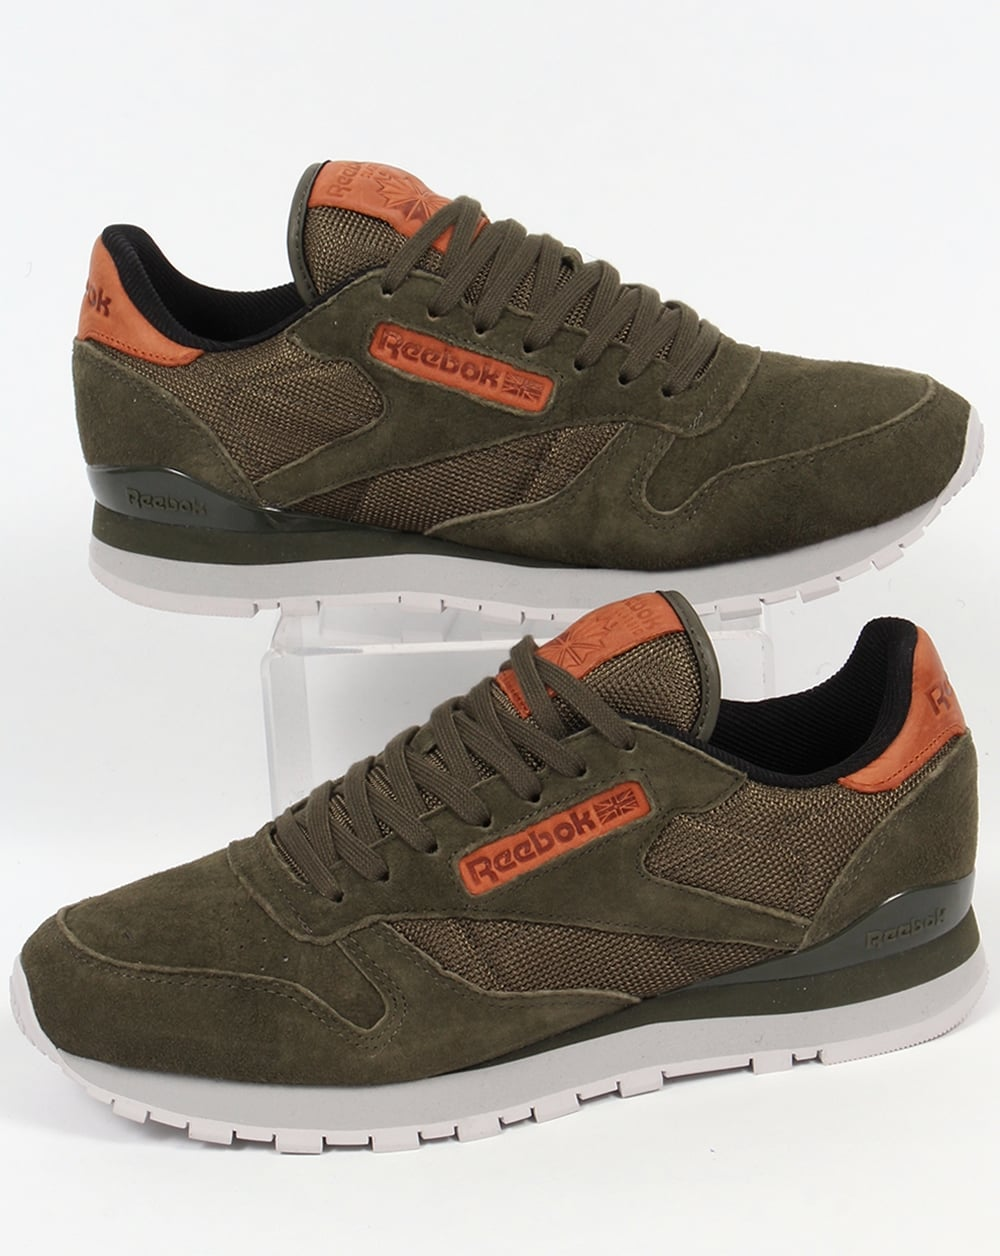 01ed7beb6 Reebok Classic Leather OL Trainers Poplar Green,80s,shoes,mens